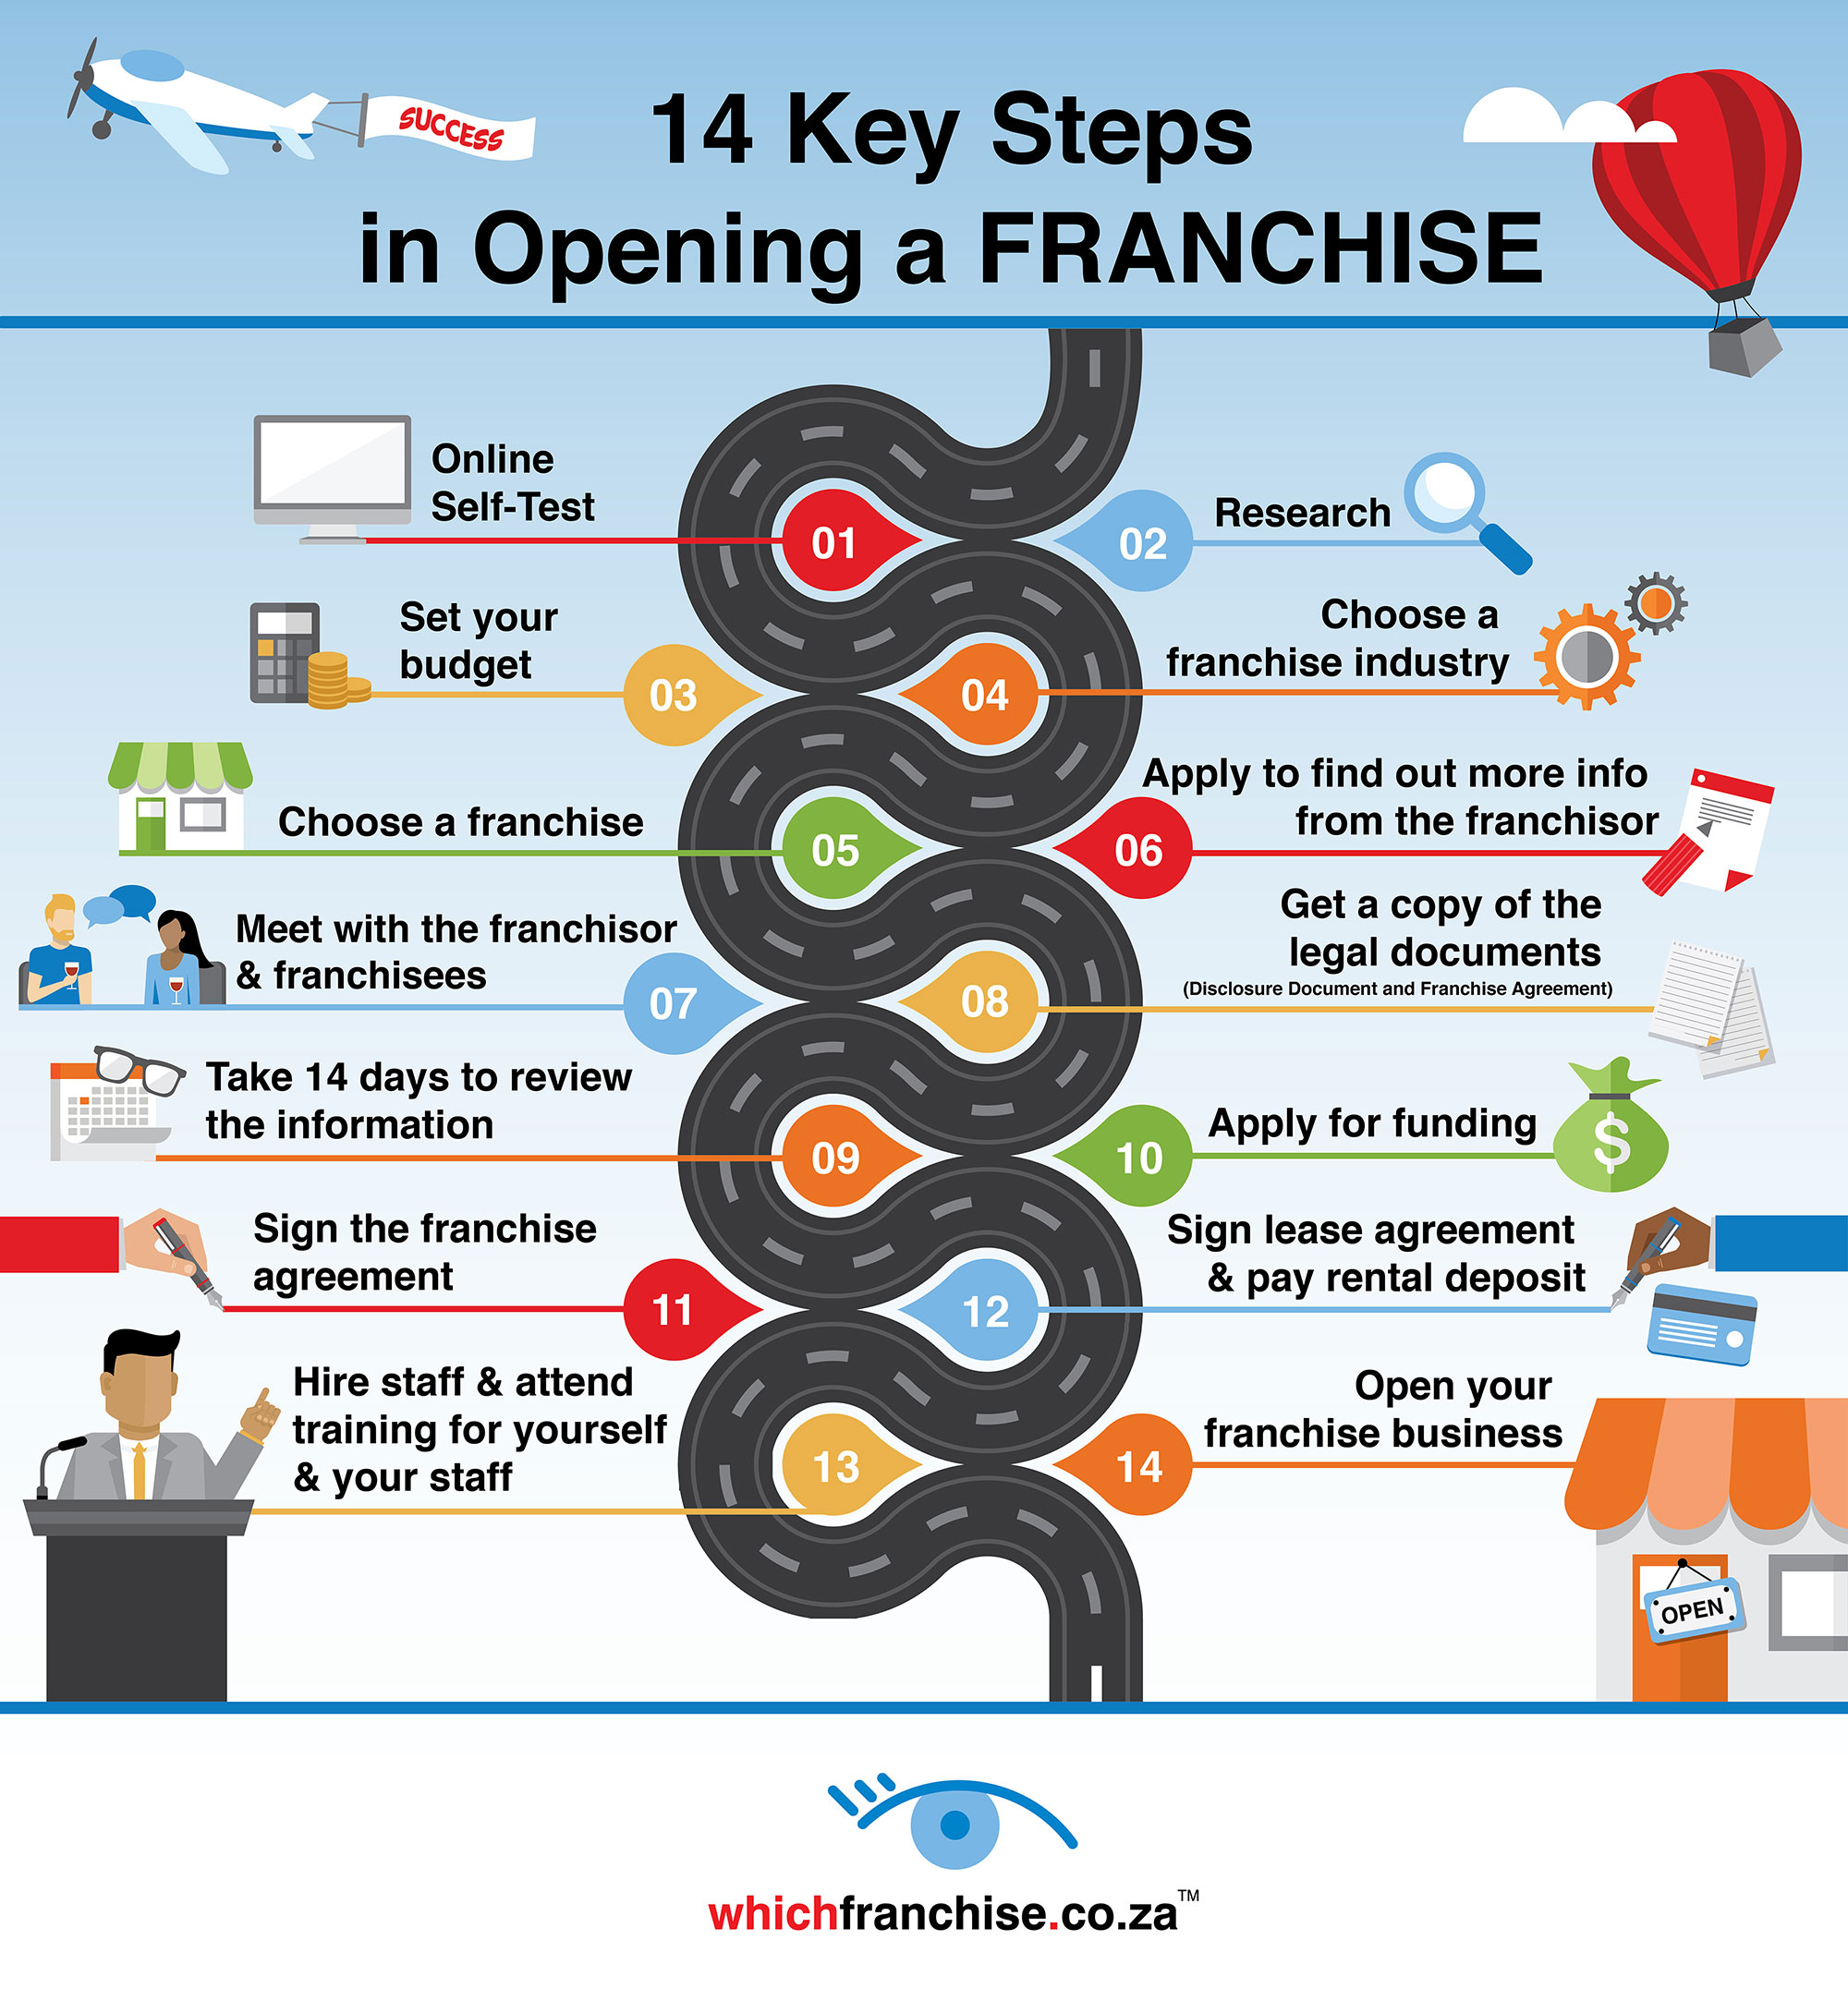 14 Key Steps in Opening a Franchise